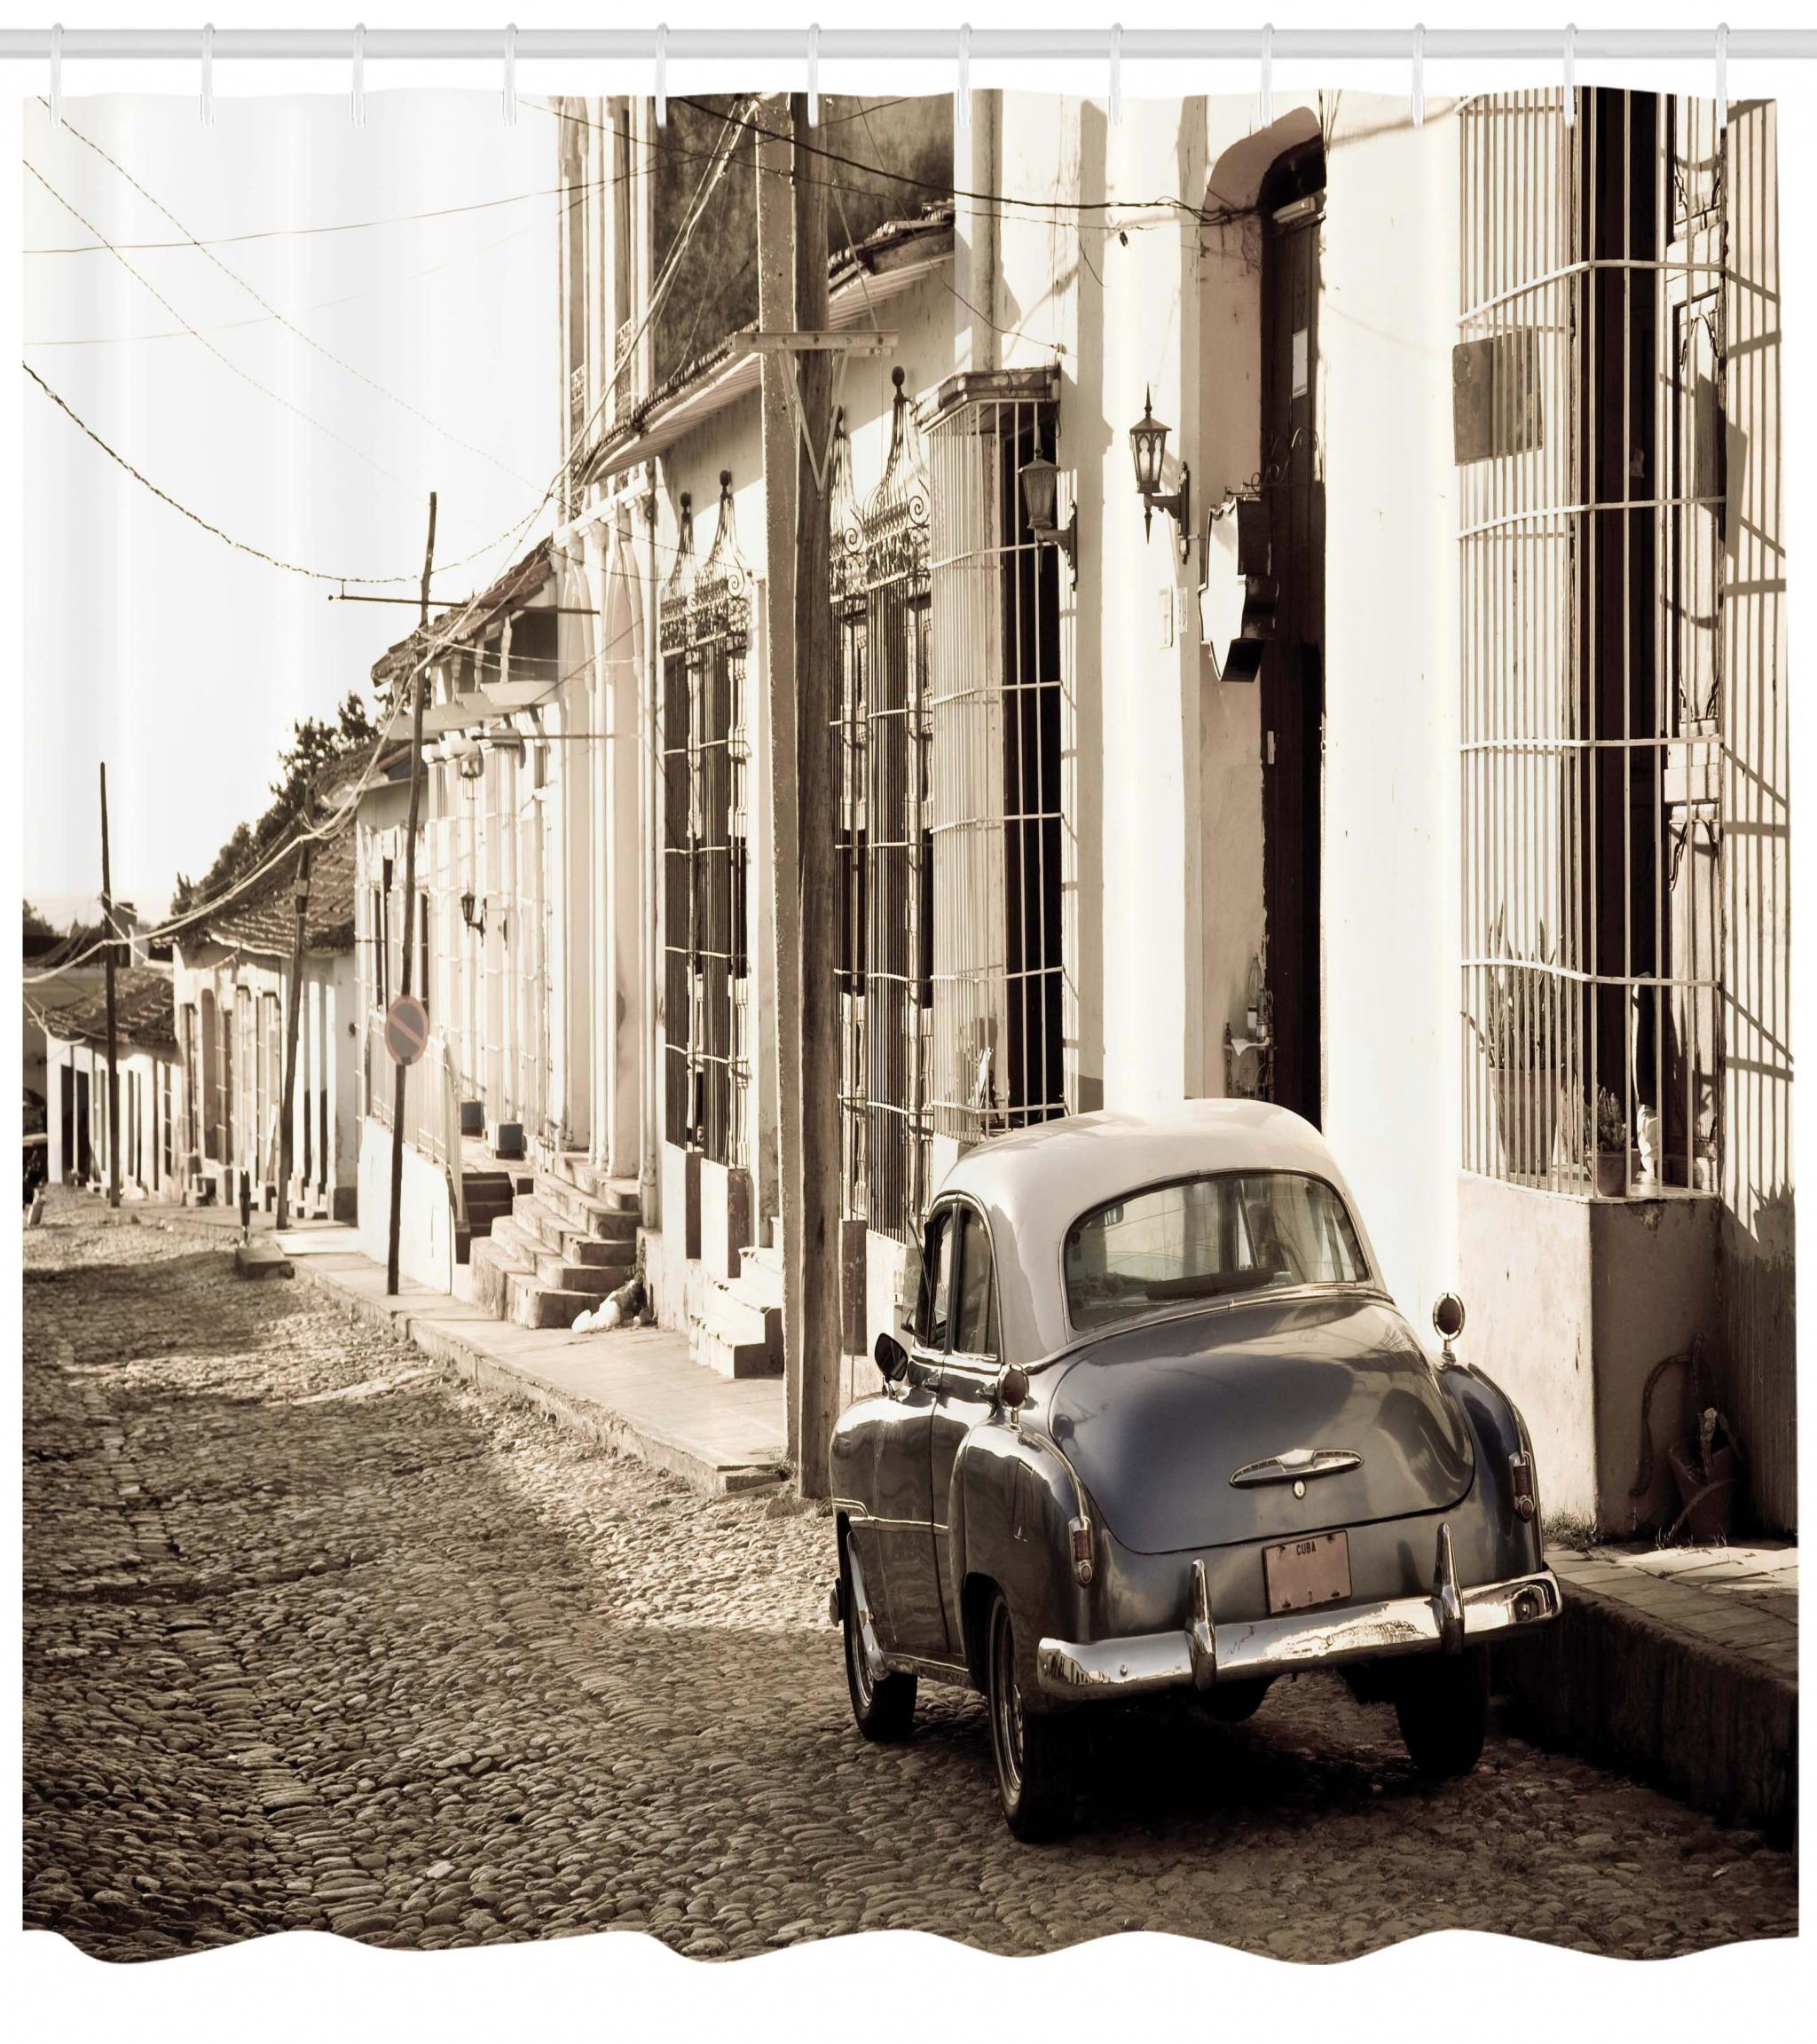 Vintage Car Shower Curtain An Old American In The Colonial Streets Of Trinidad Cuba Historical Picture Fabric Bathroom Set With Hooks Beige